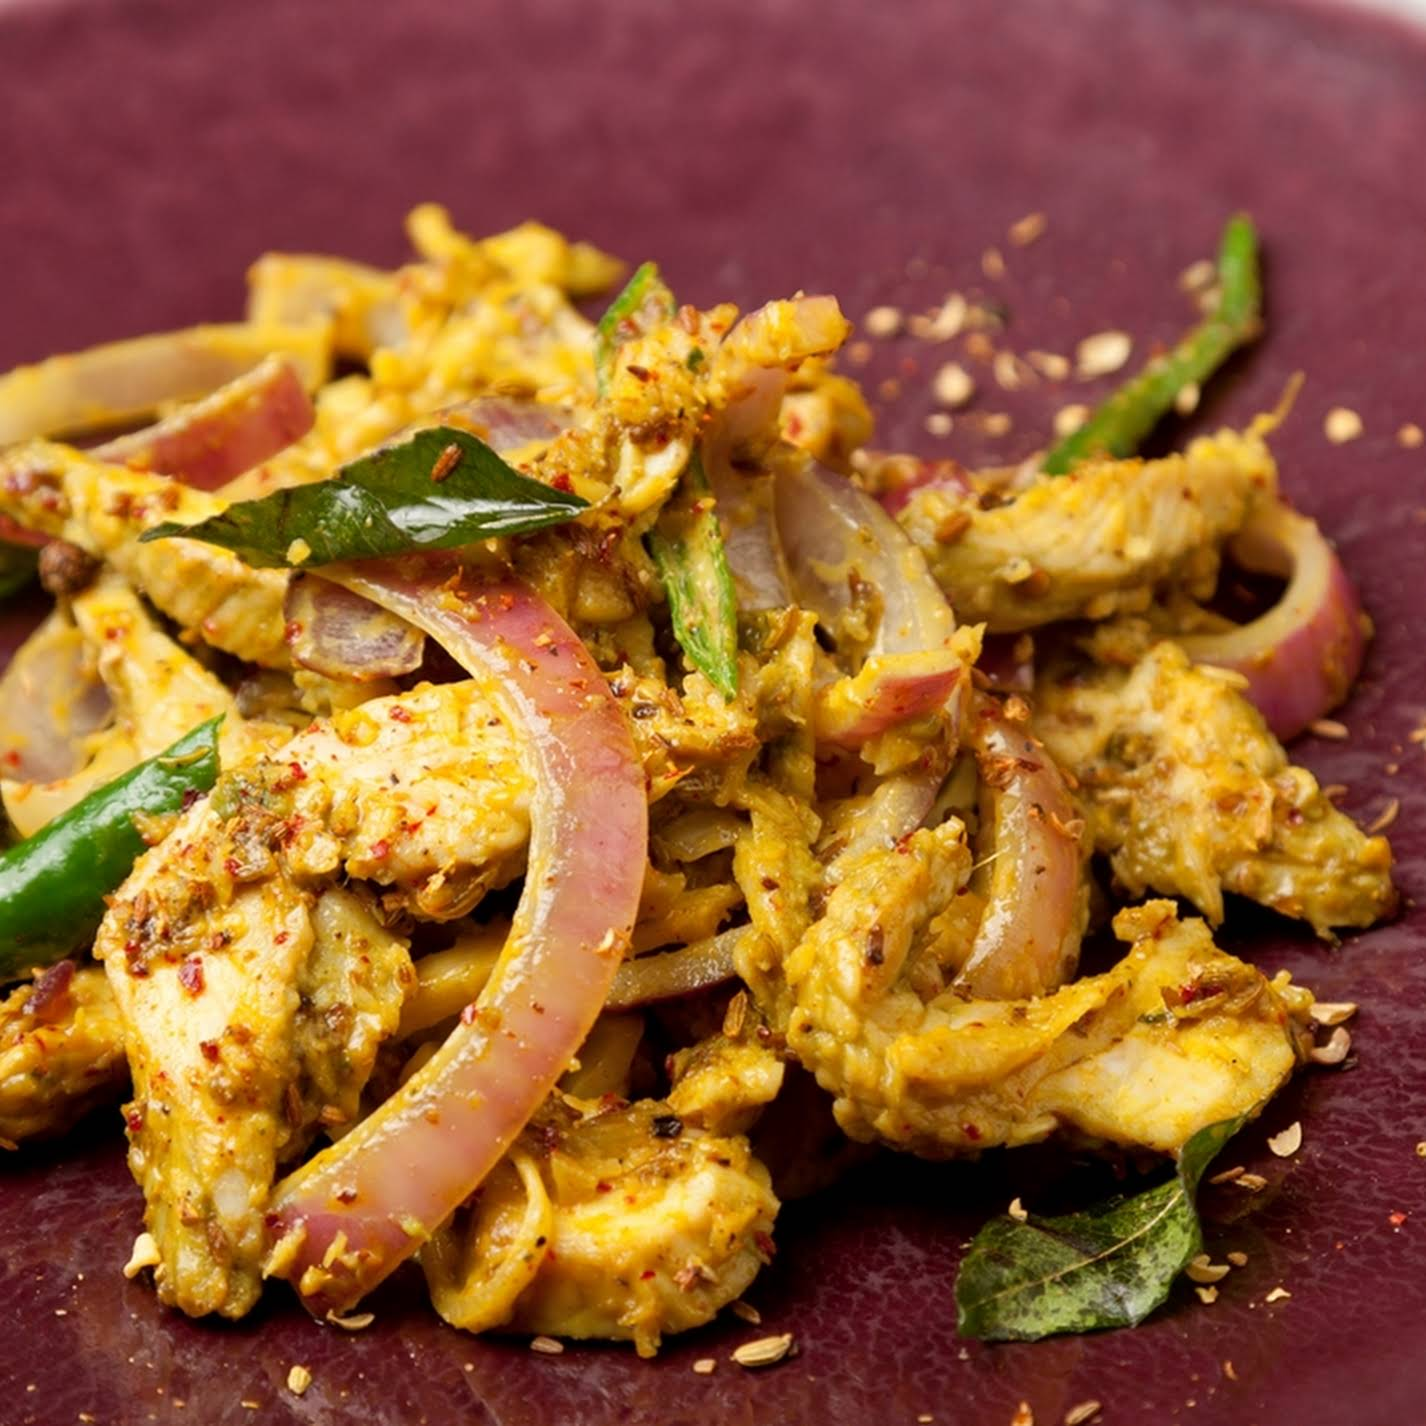 South Indian Style Stir Fry Of Leftover Turkey With Curried Yoghurt